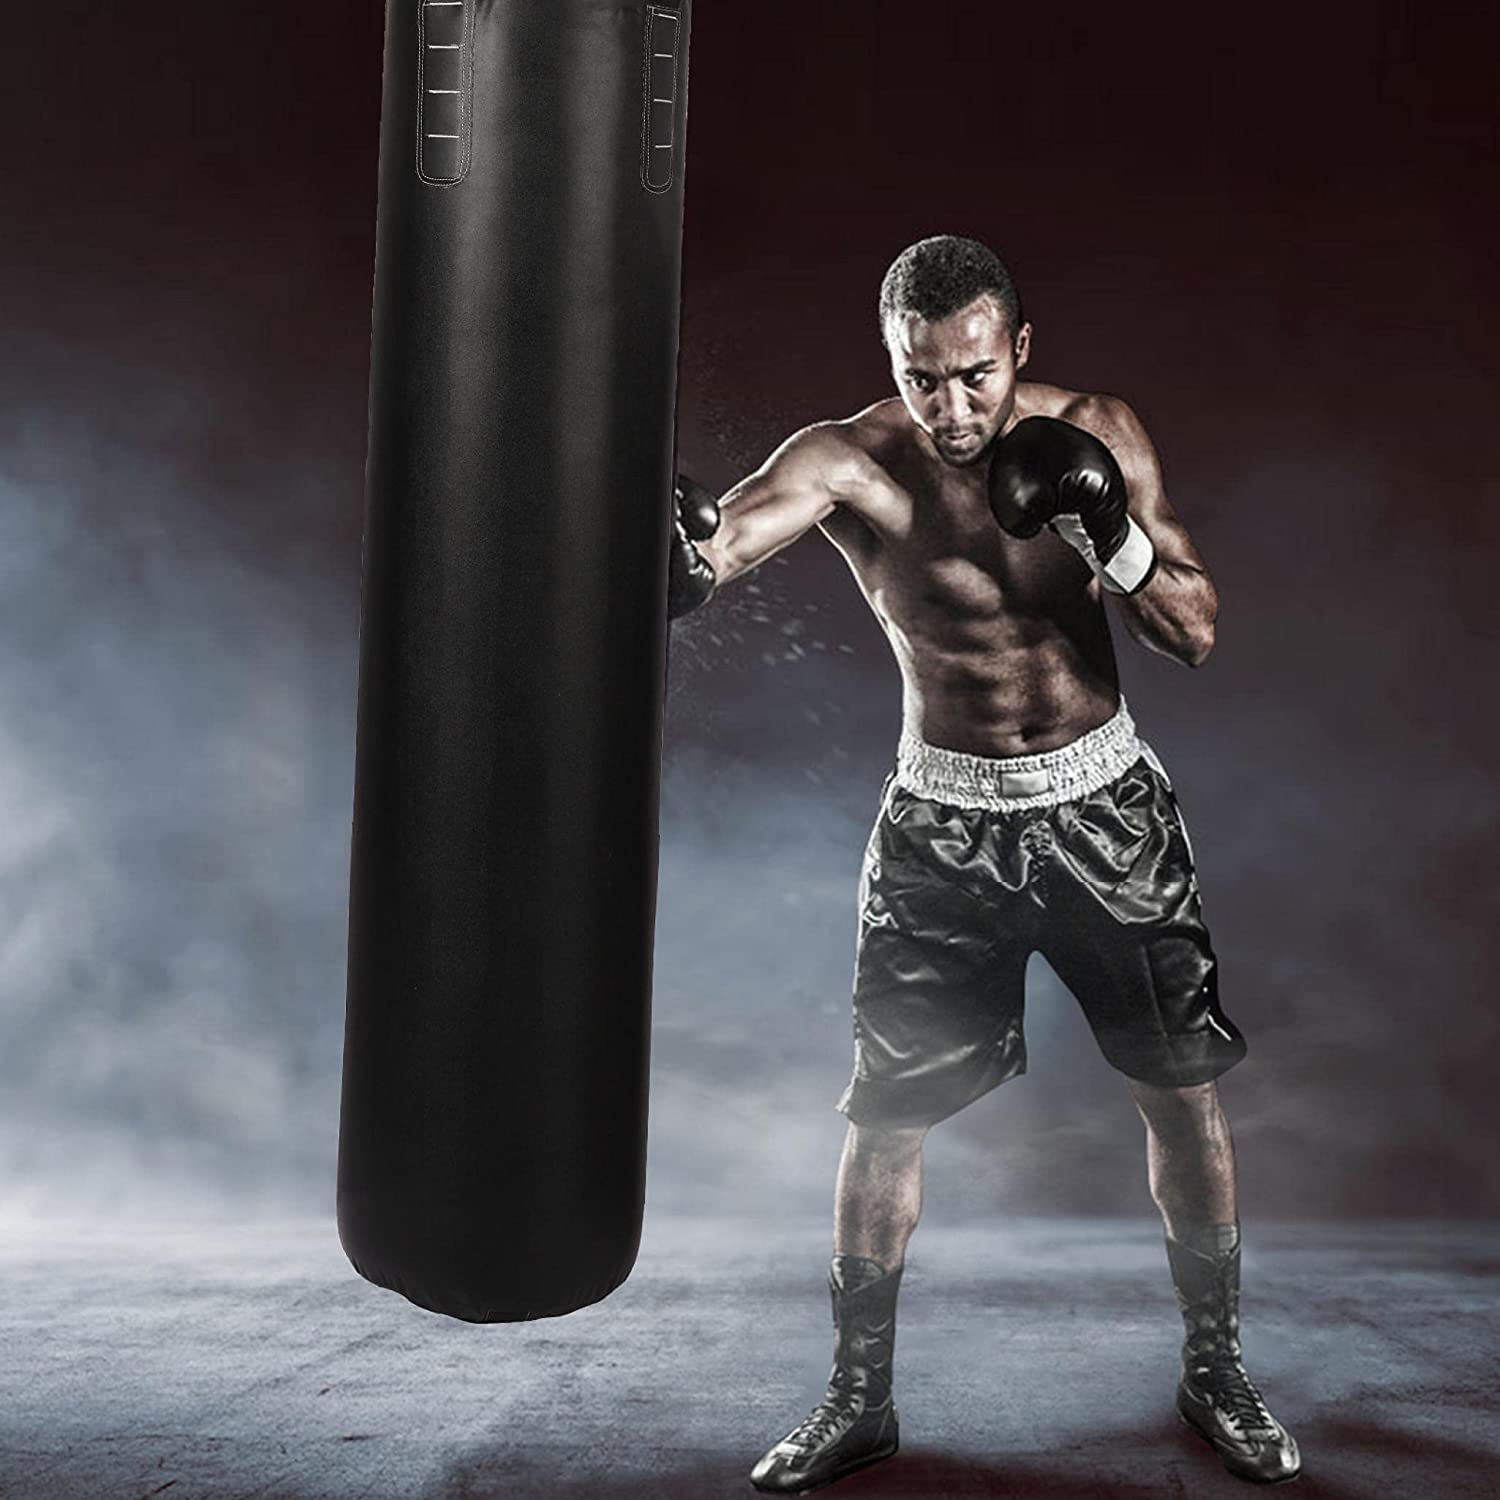 CHENTUO Punching Bag Outlet Cheap mail order specialty store SALE 44lbs 88lbs Heavy Set Filled Boxing M Kick